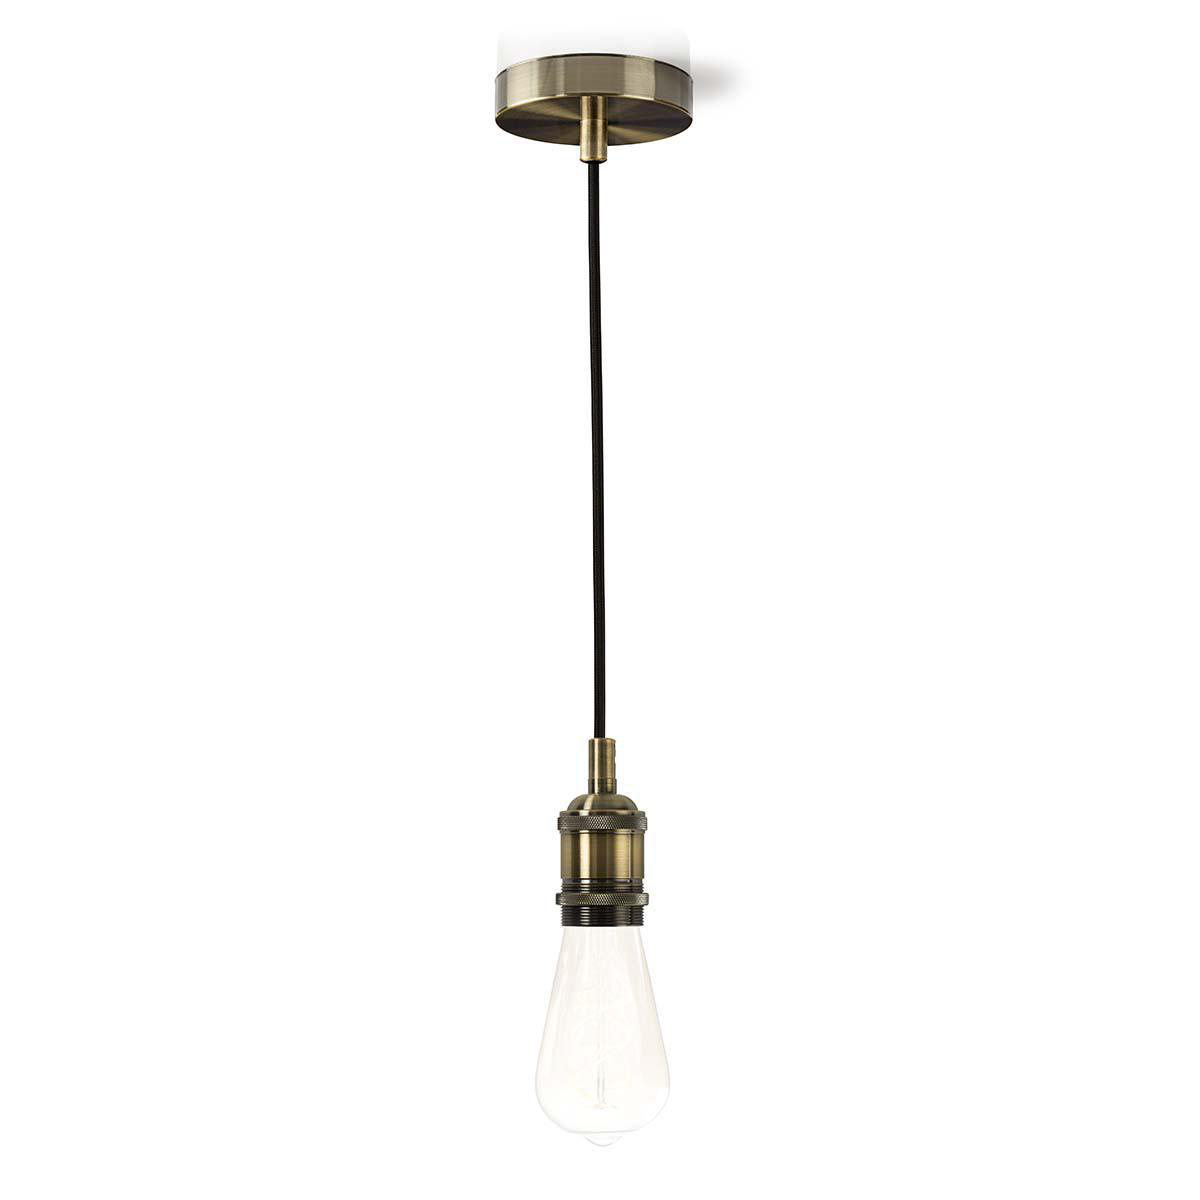 Lamphouder E27 fitting - klassiek - messing - goud - pendeladapter